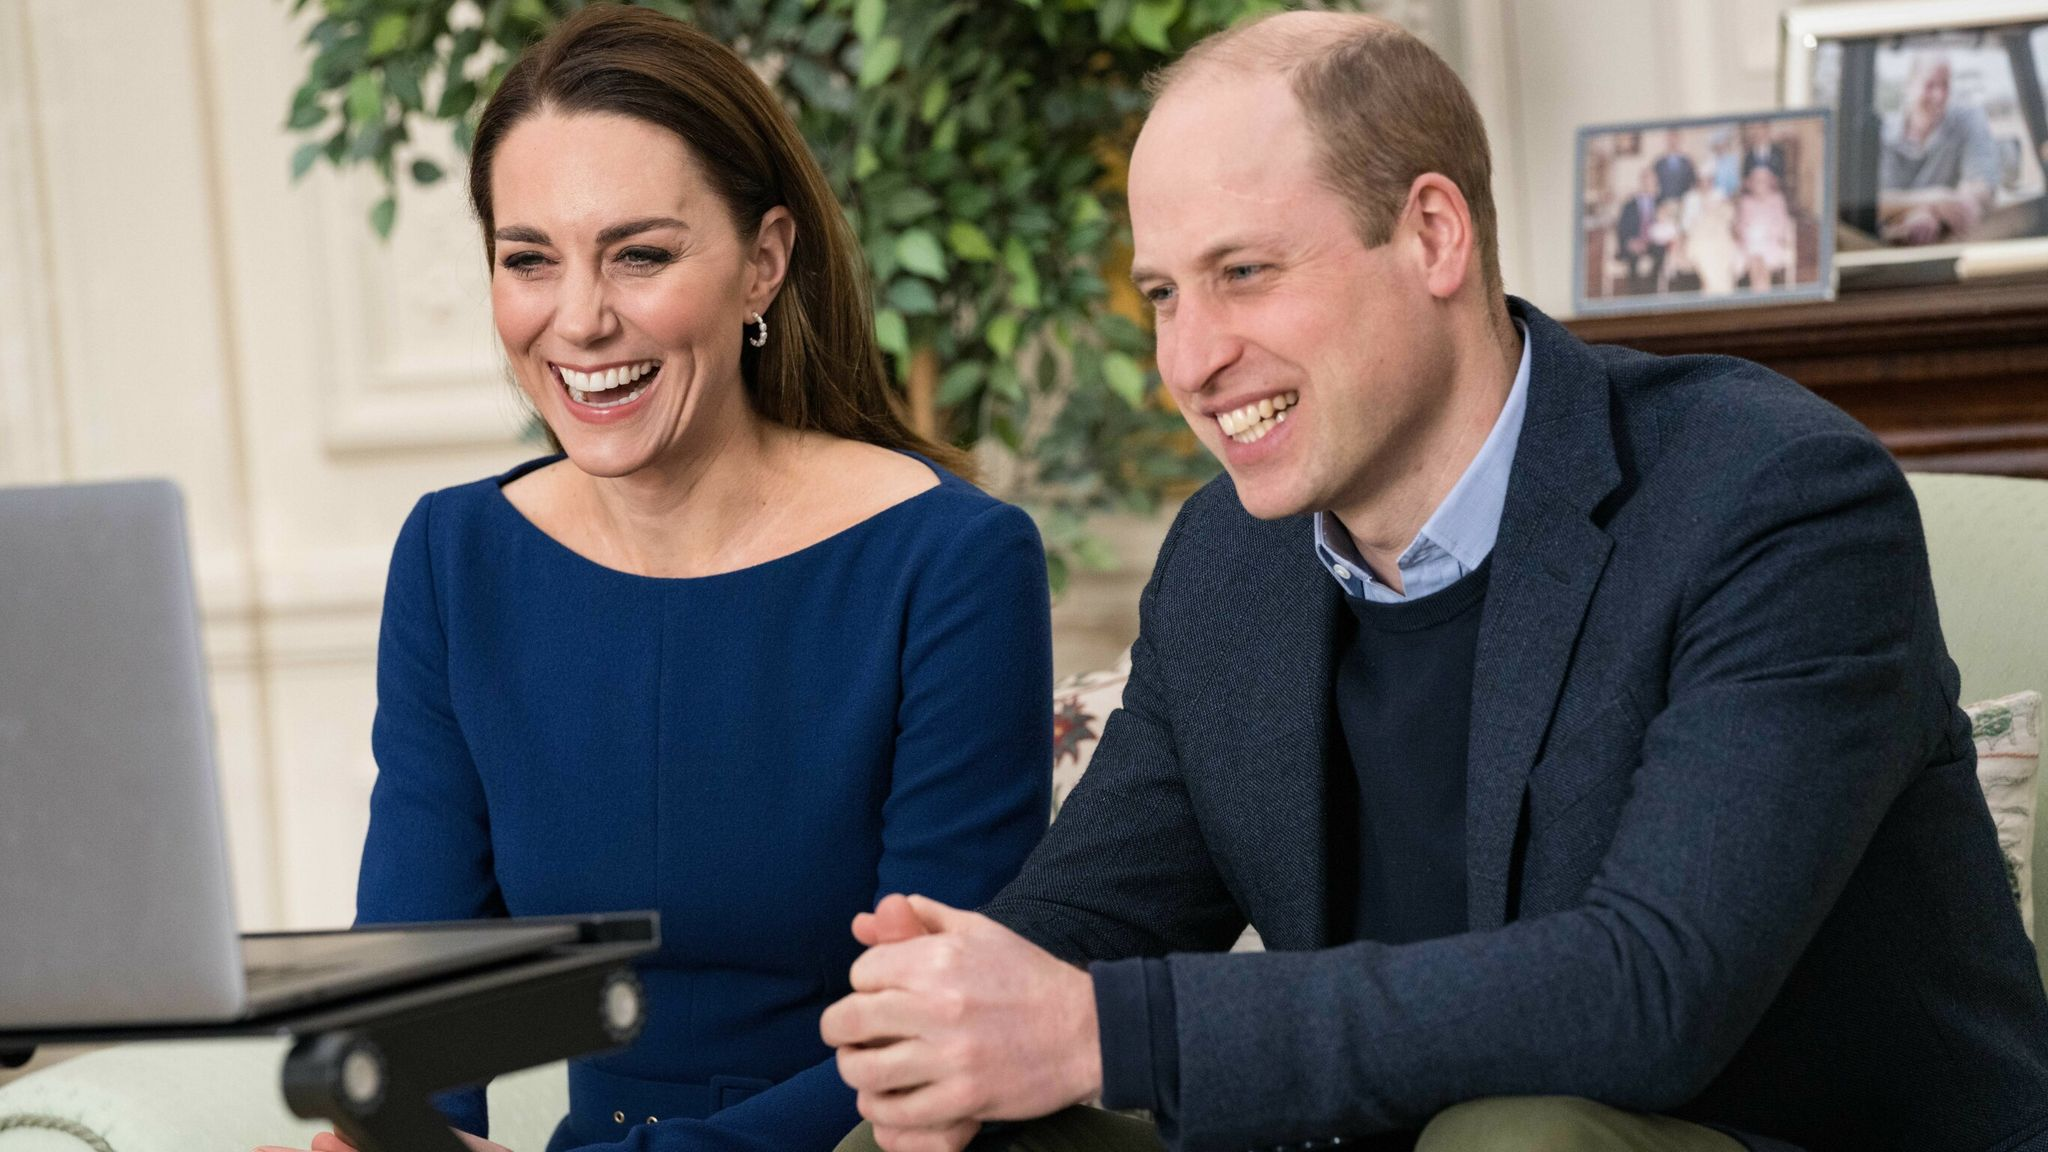 The Duke and Duchess of Cambridge during their virtual engagement